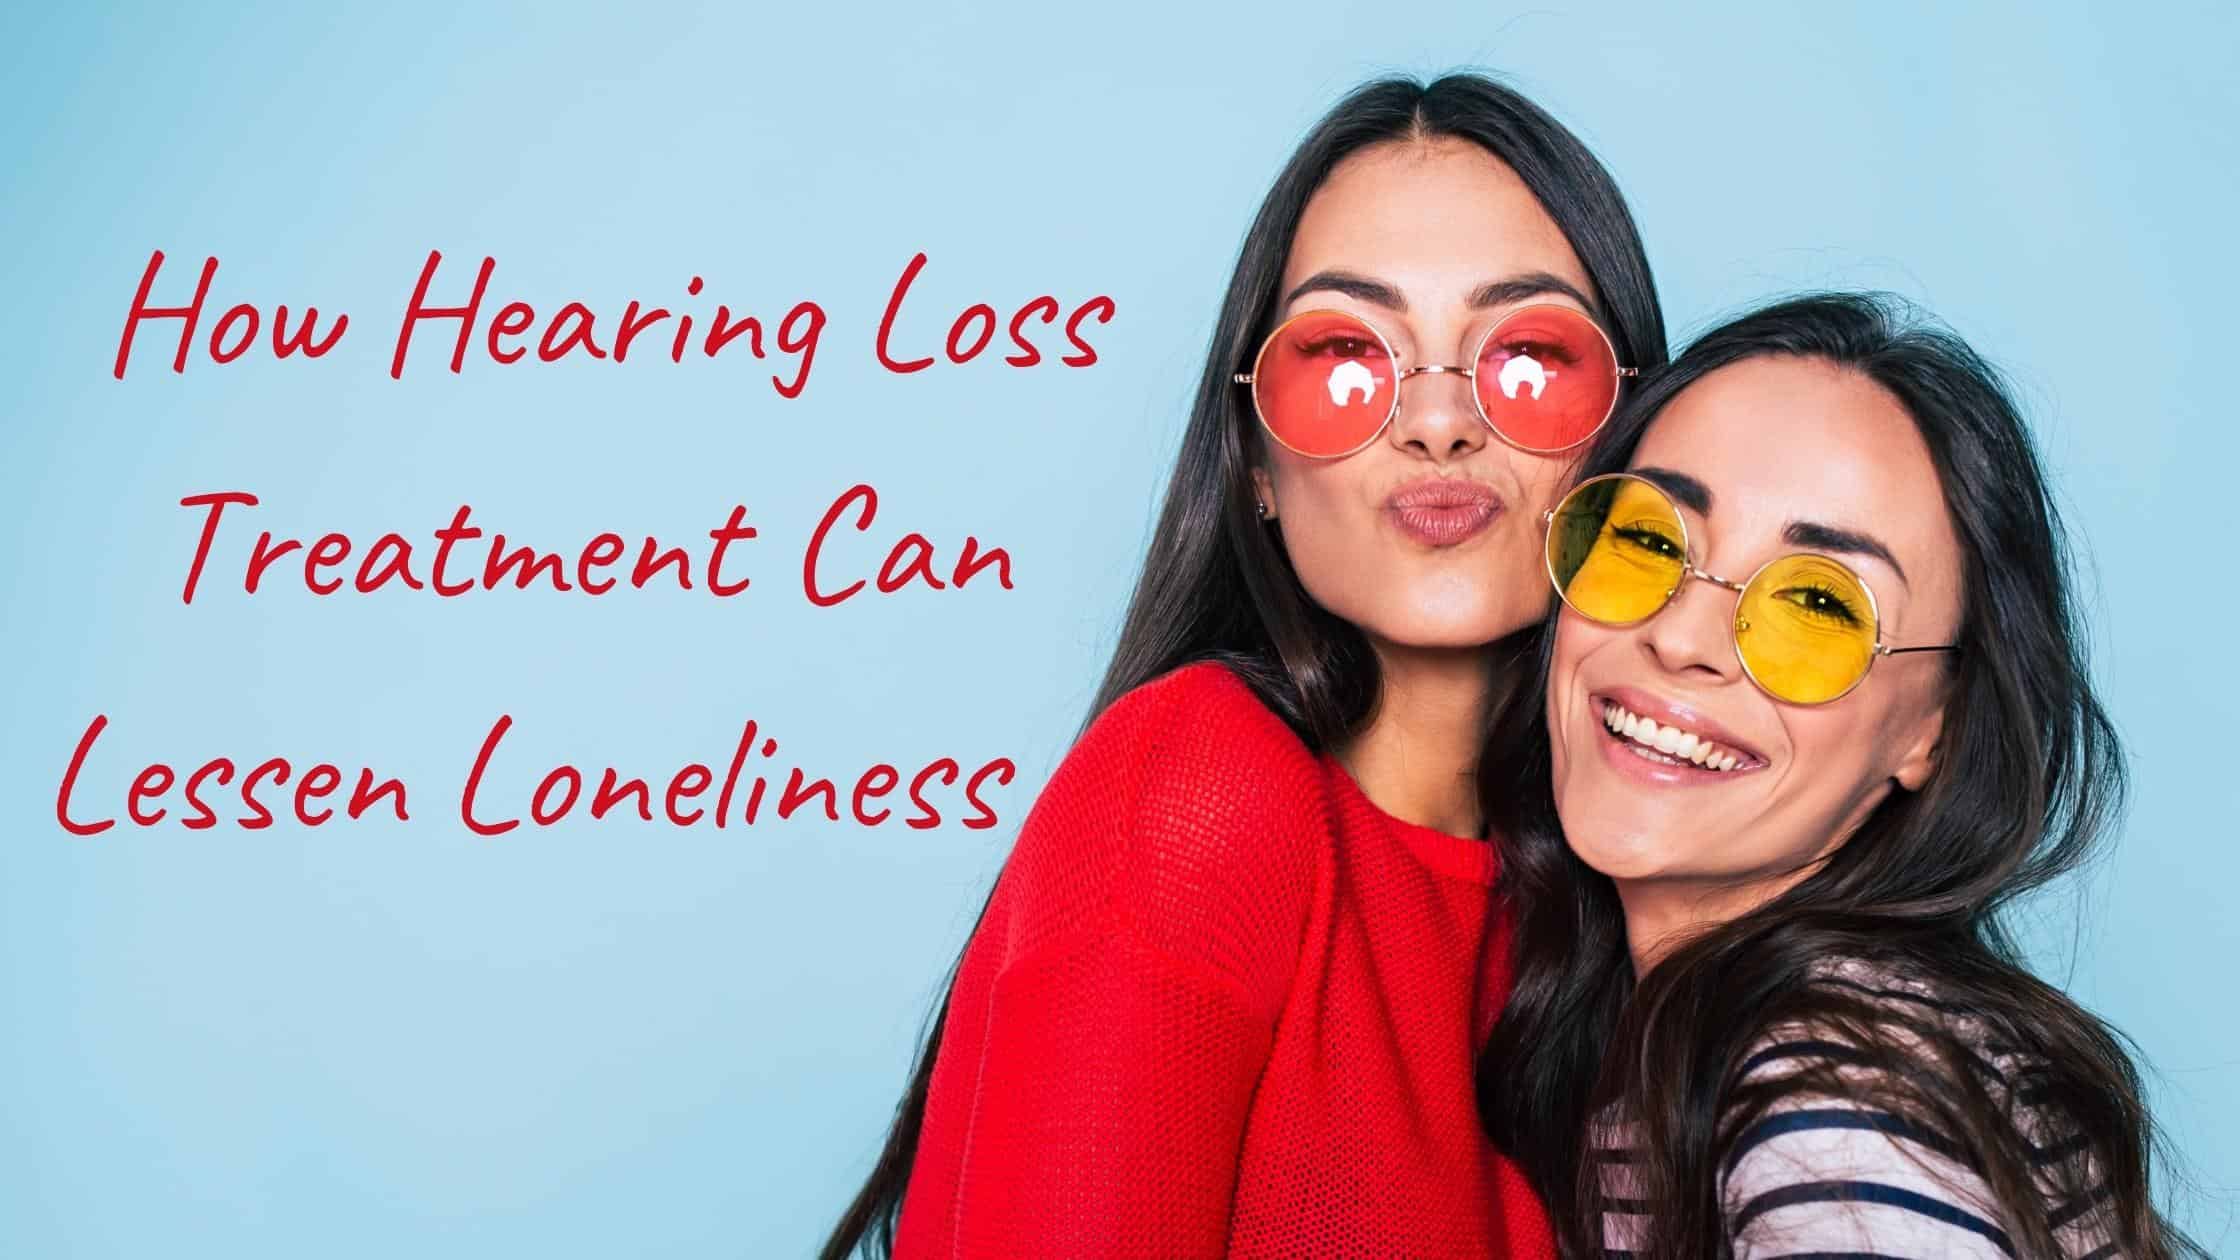 How-Hearing-Loss-Treatment-Can-Lessen-Loneliness